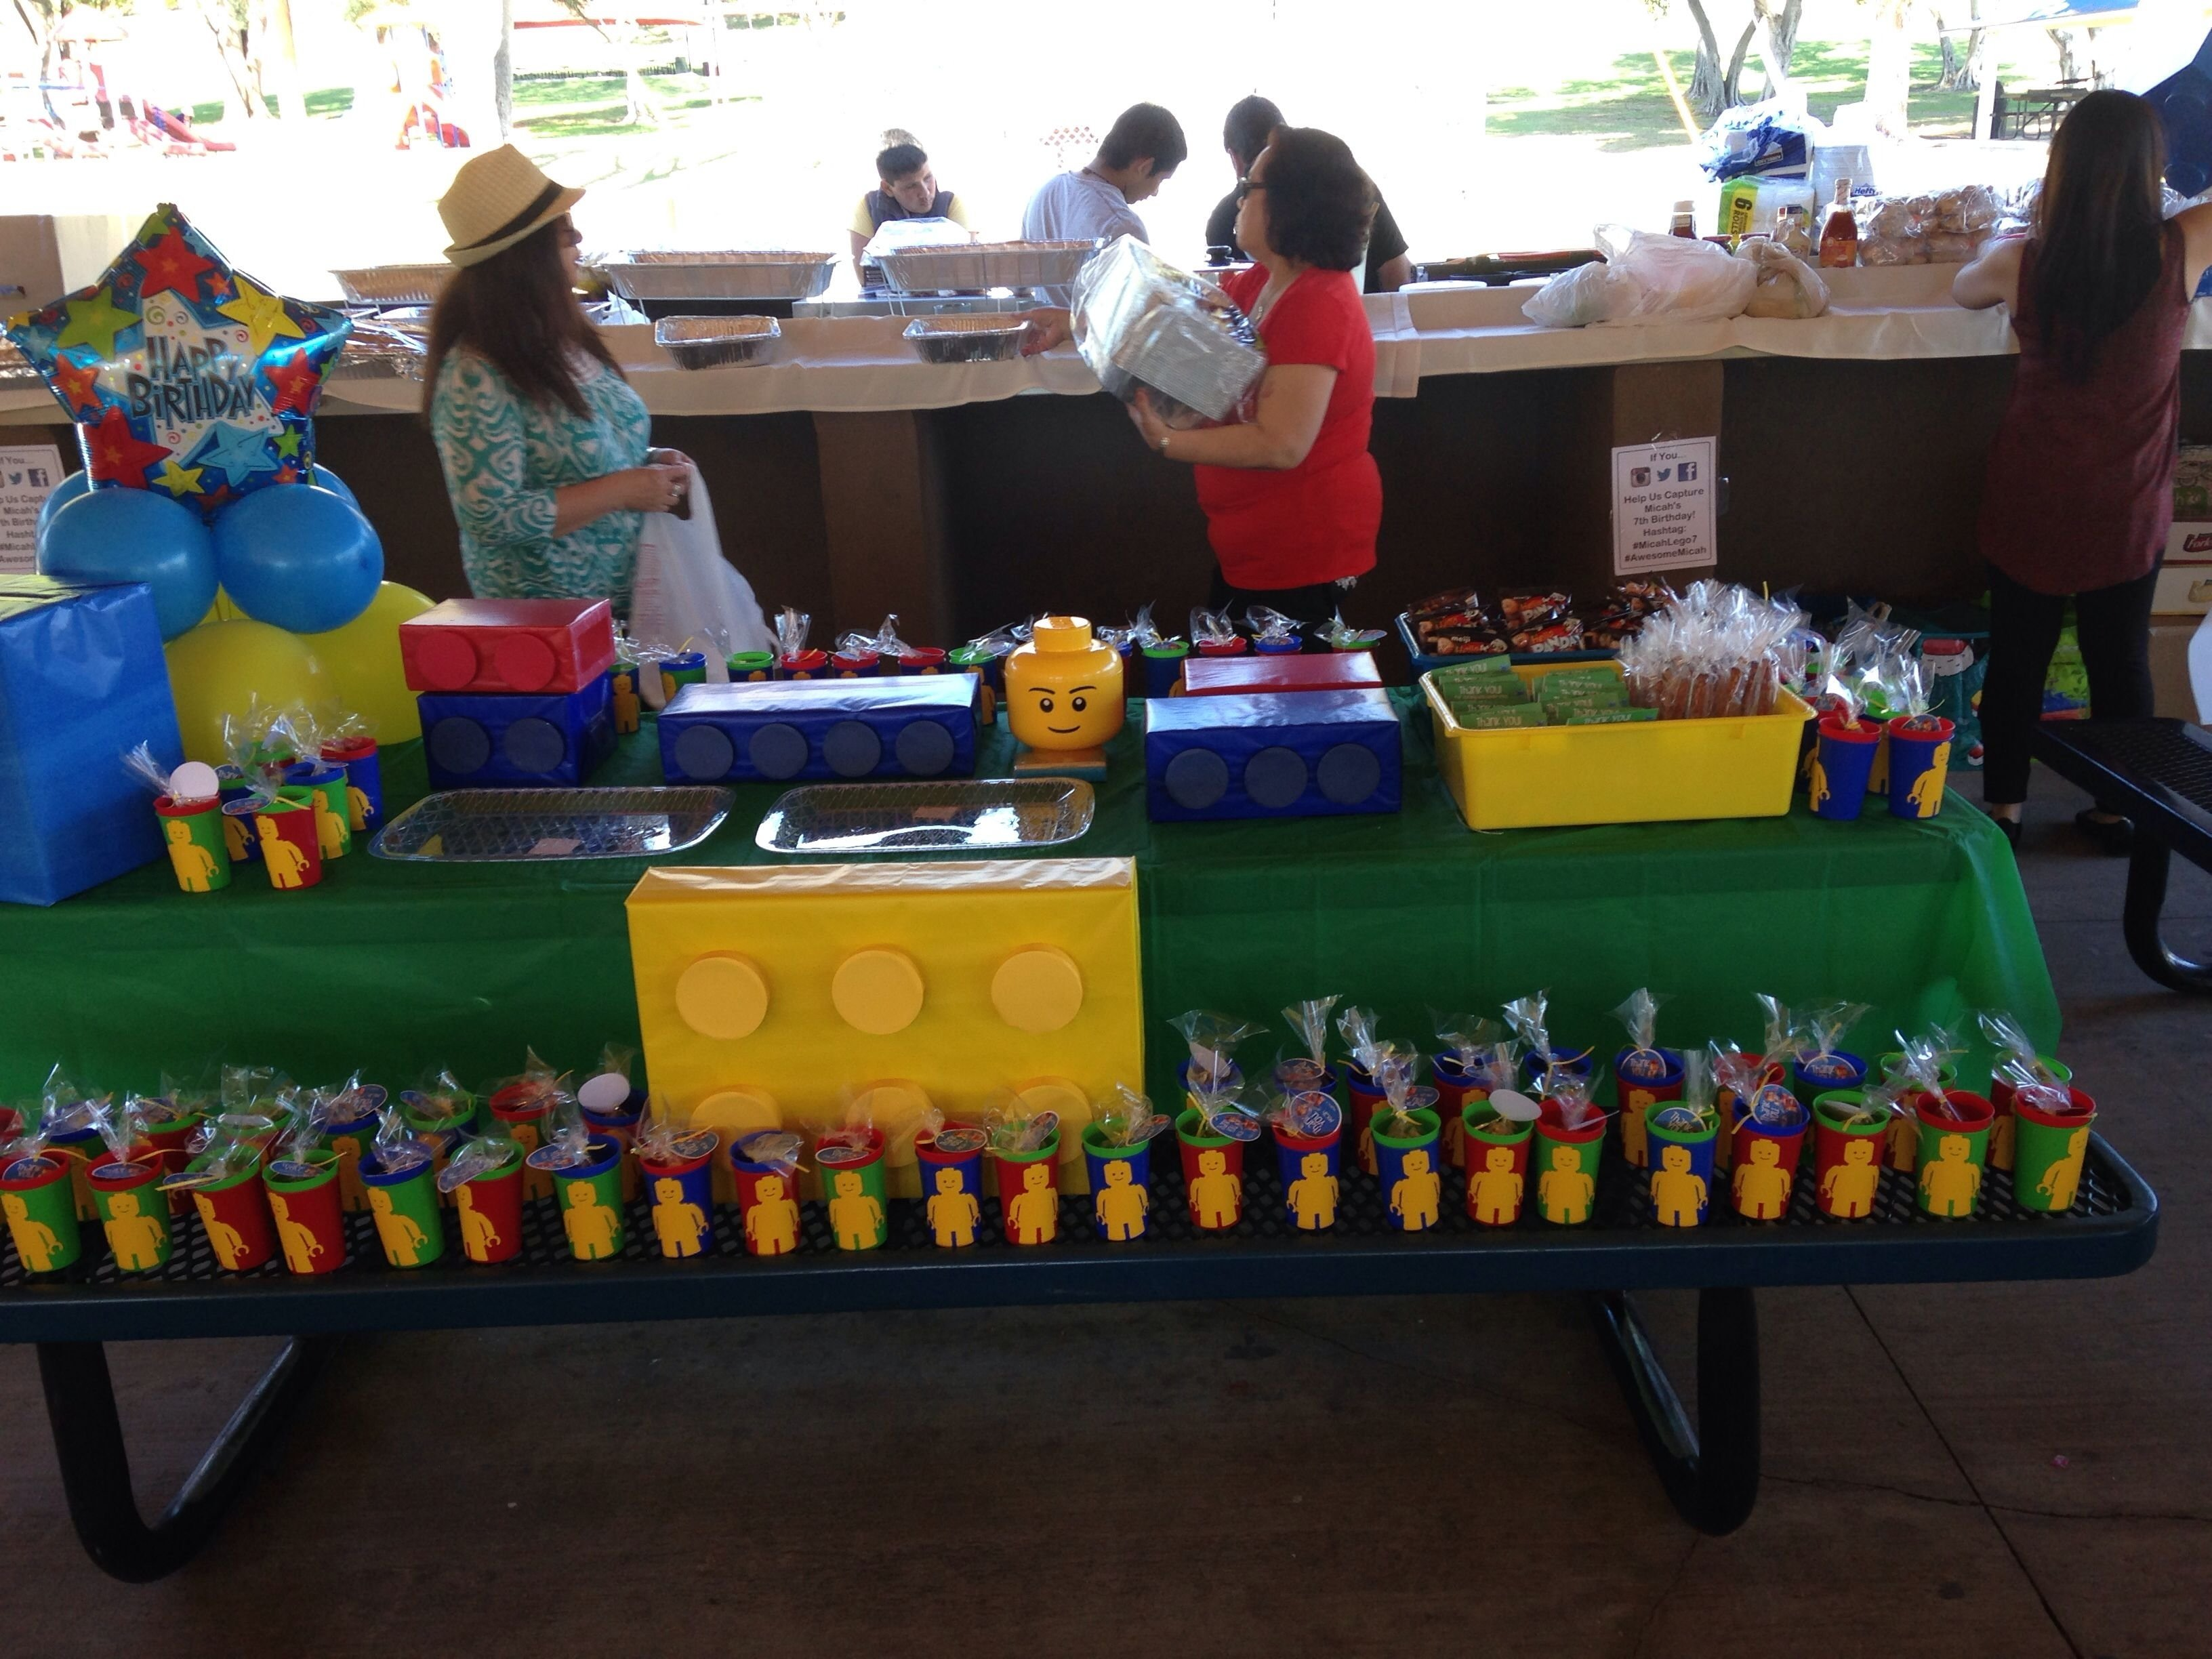 a lego themes birthday party for a 7 year old boy so cute